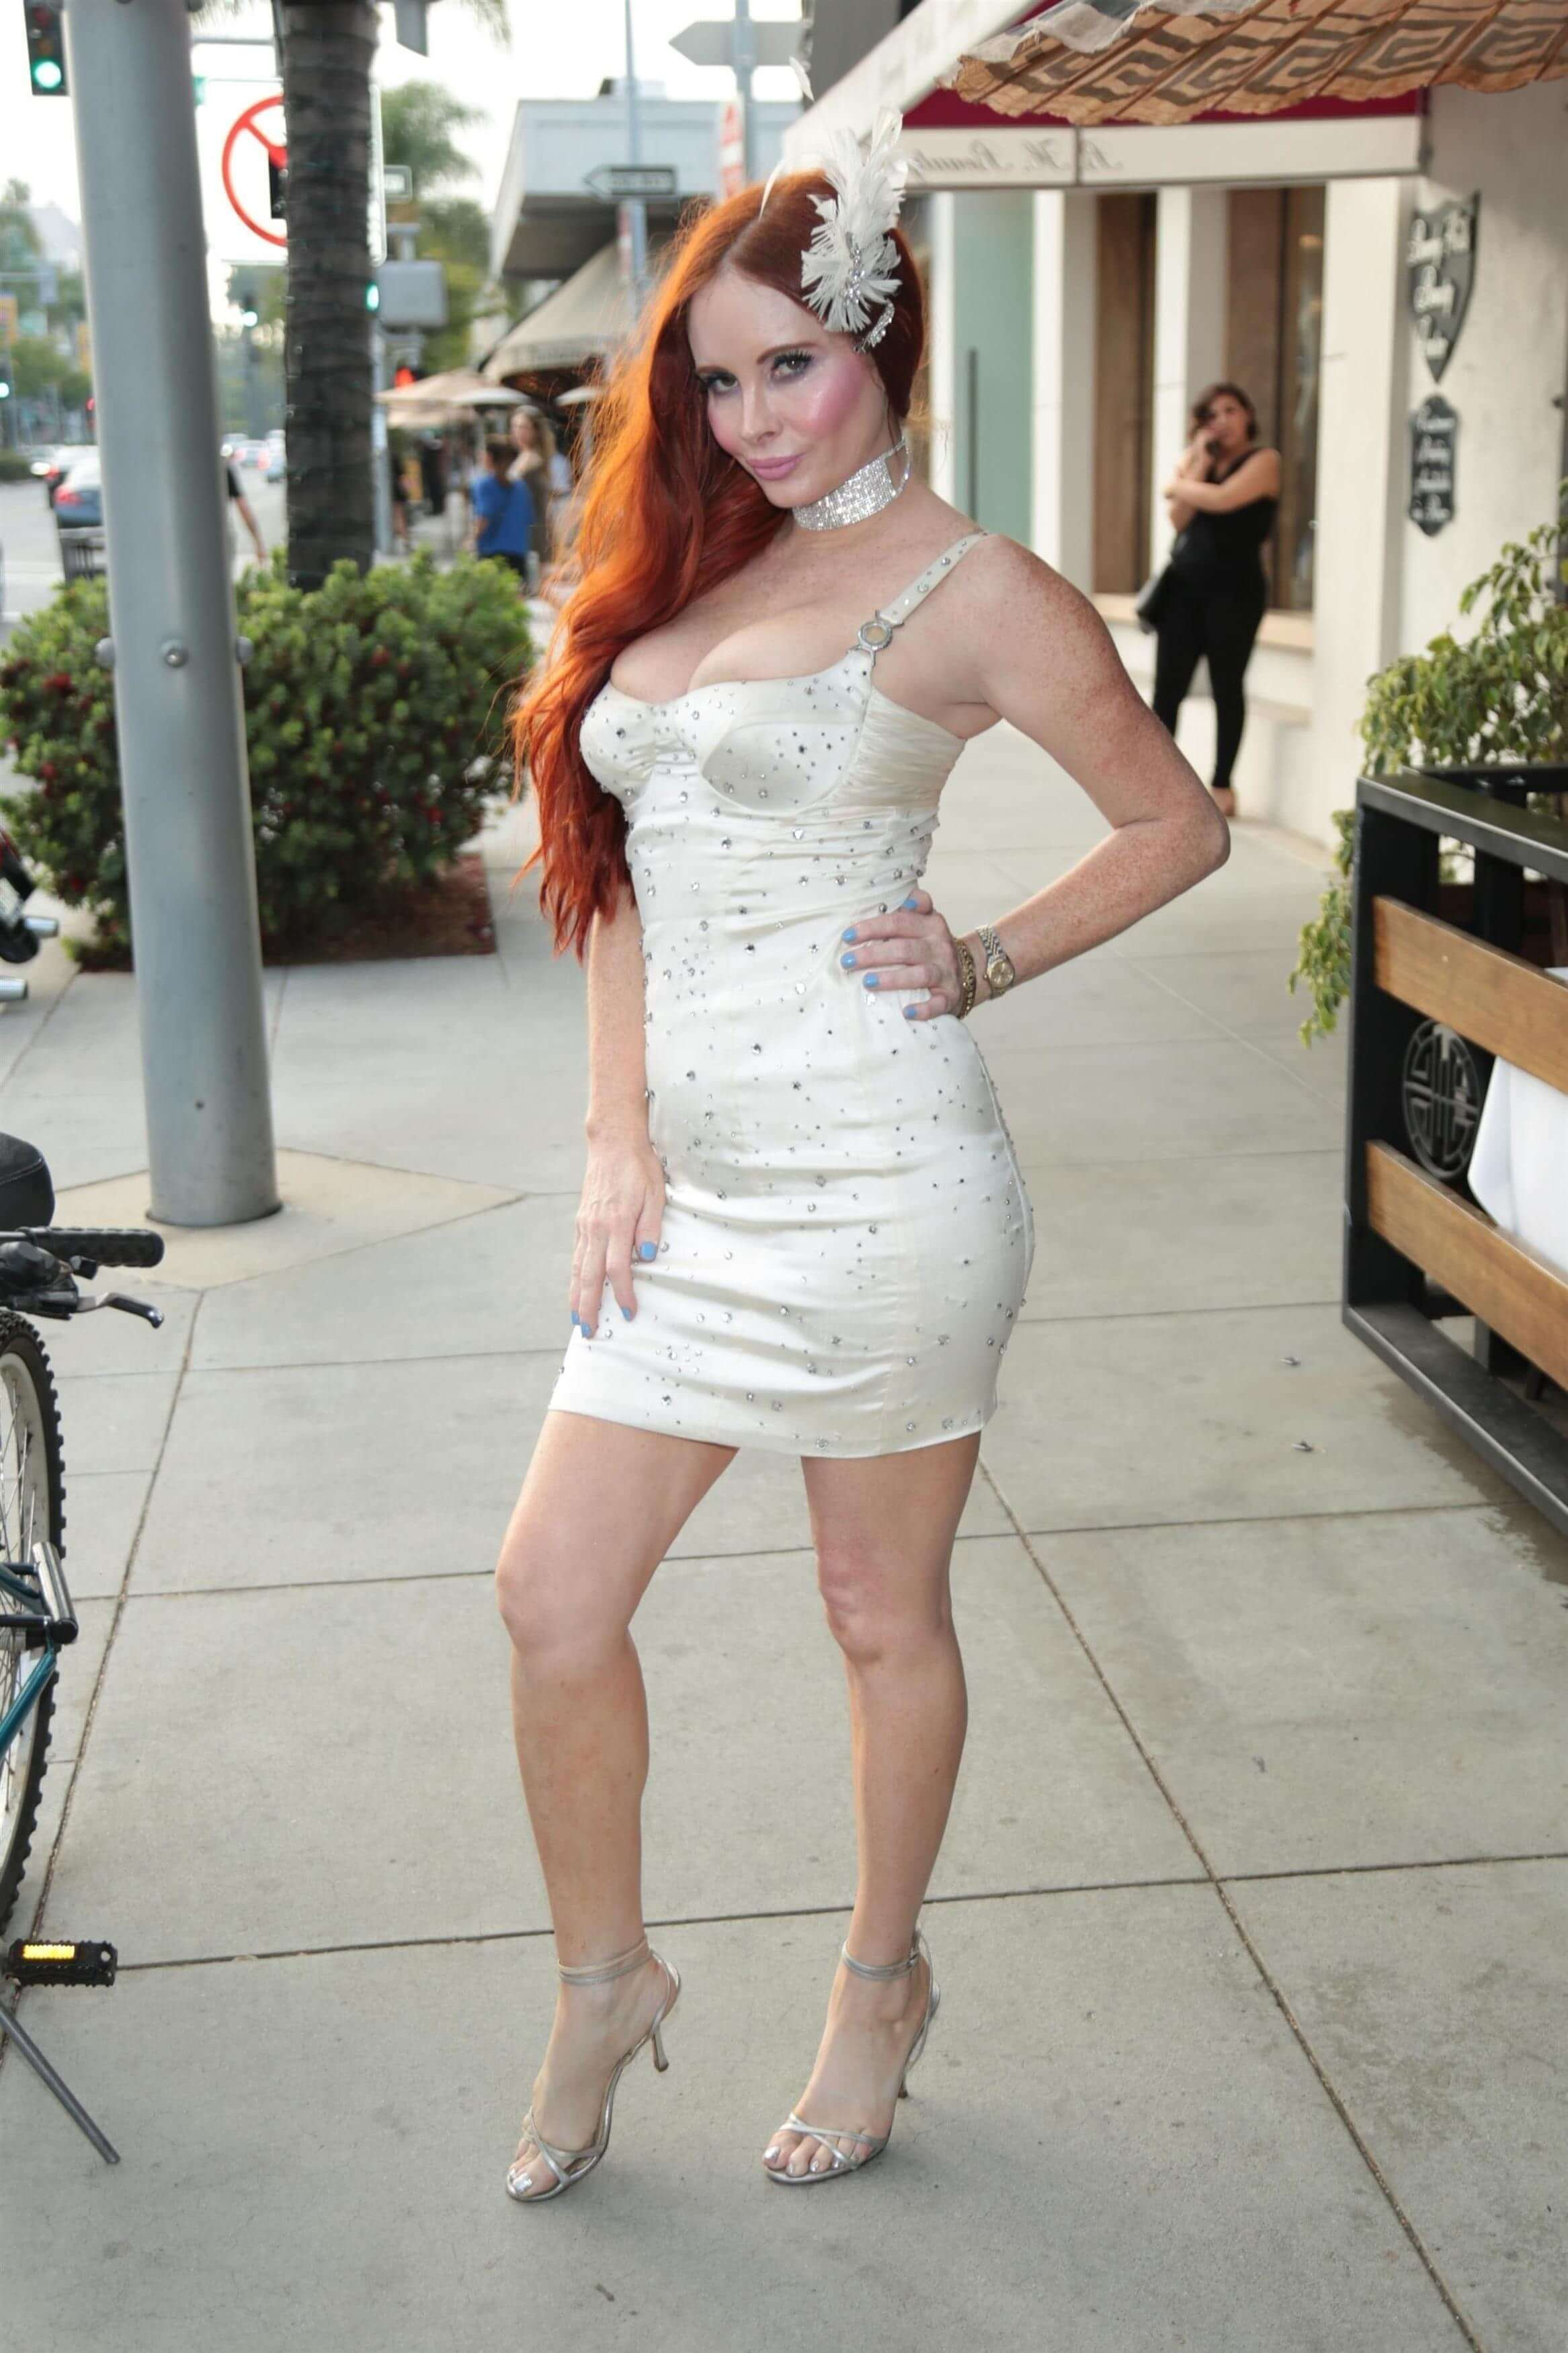 Phoebe Price hot busty pictures